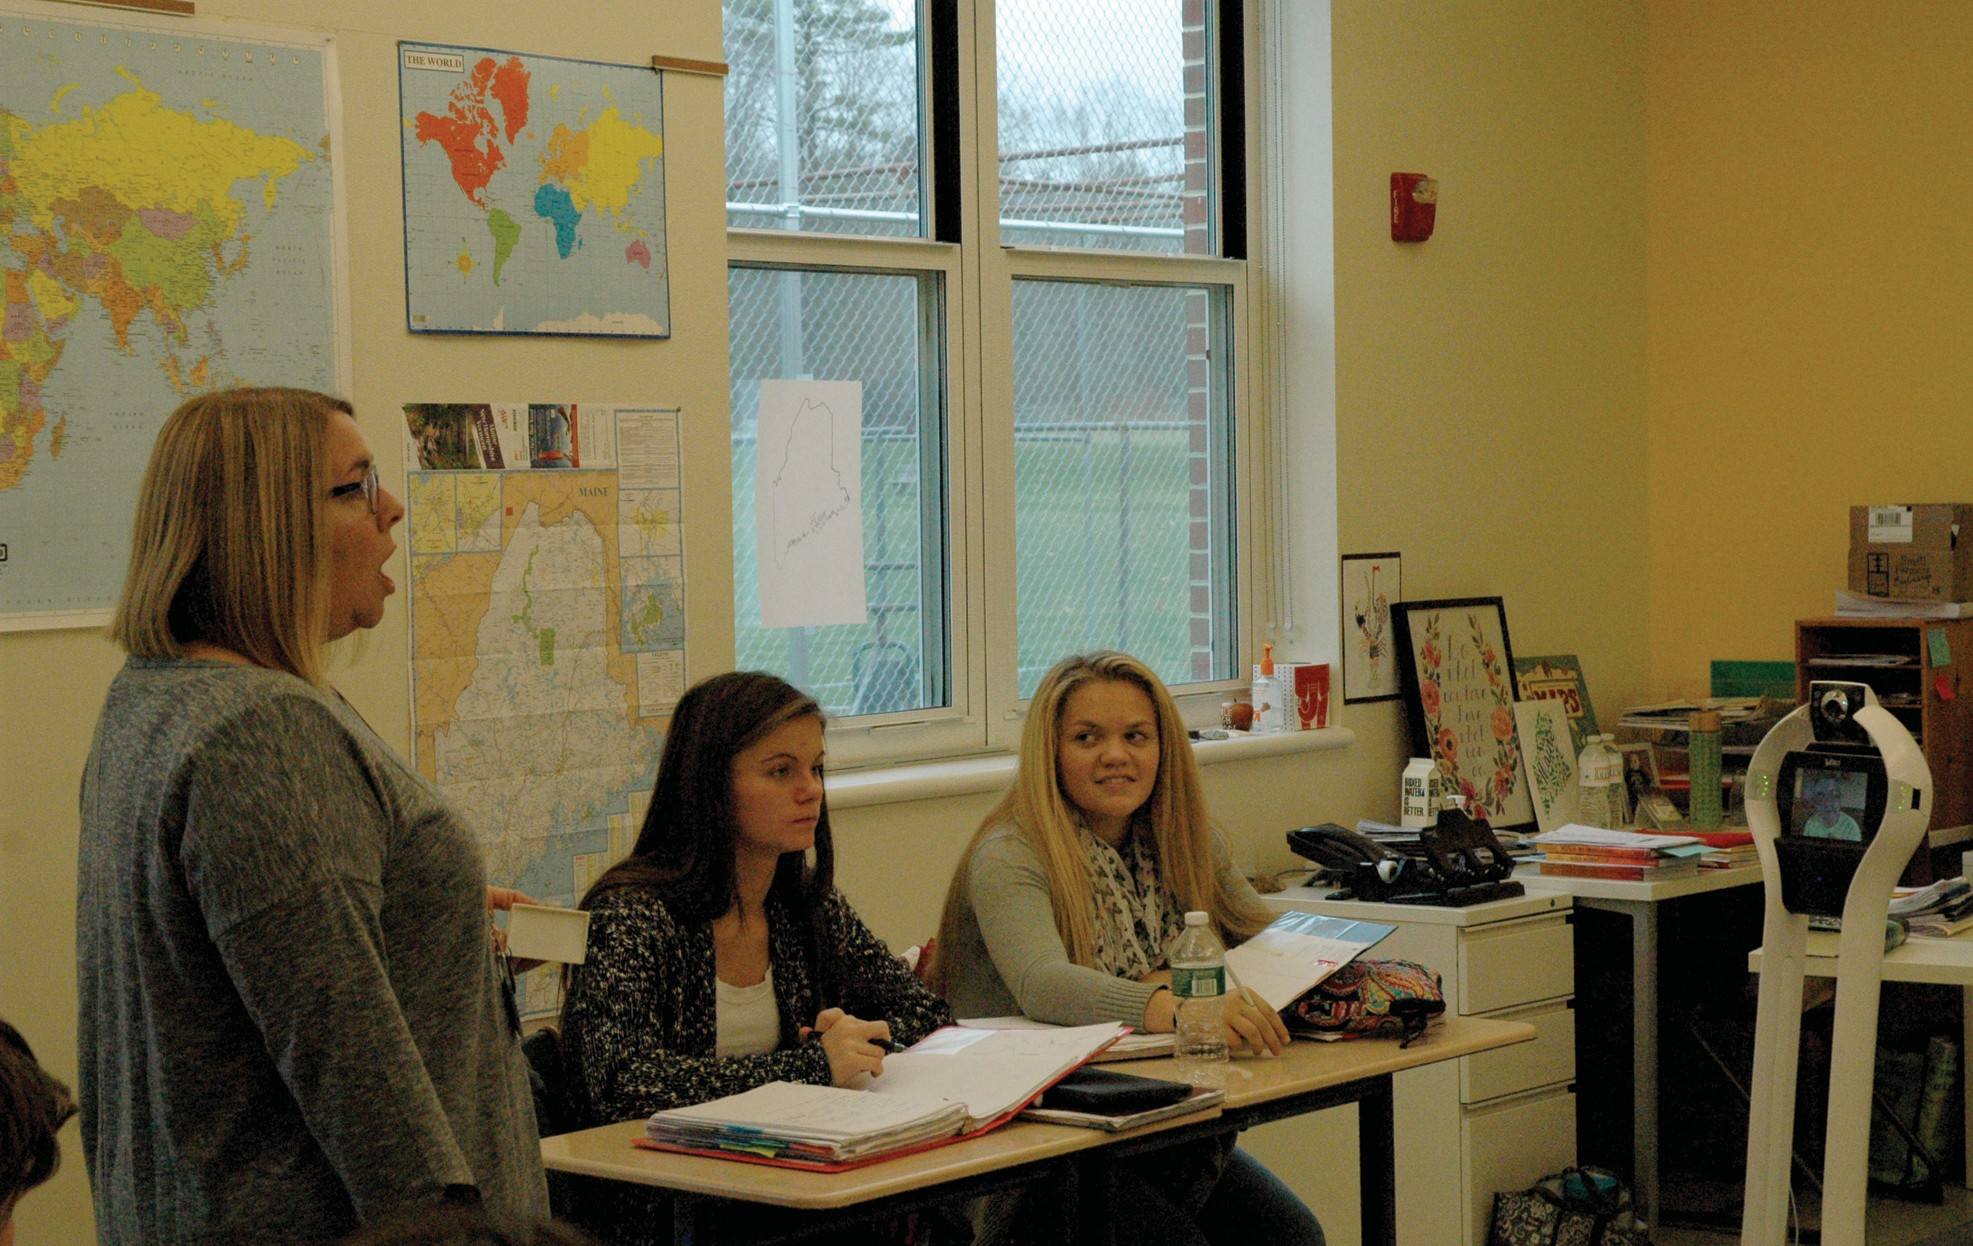 Hayley Desjardins listens remotely from home as Thornton Academy Middle School English teacher Heidi Brewer talks Thursday. Sitting next to Brewer are students Fayth Nedeau and Olivia Paradis.